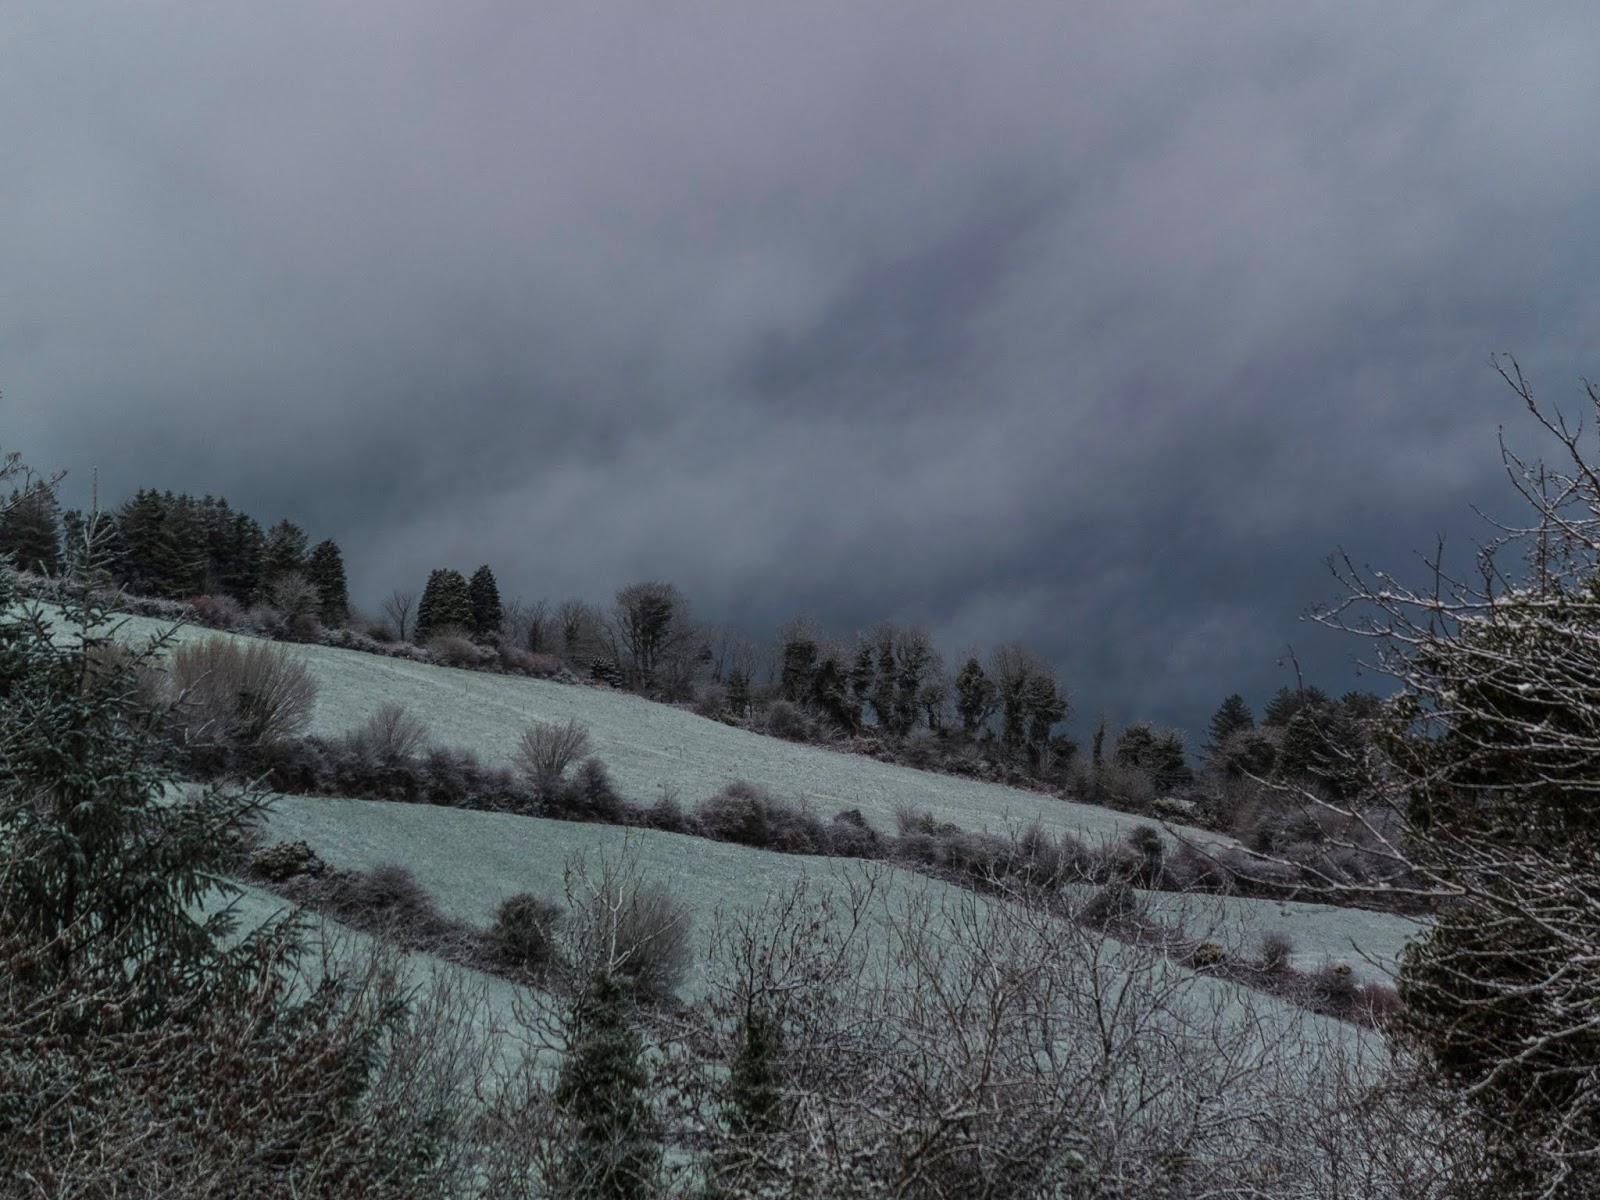 A dark and grey sky above a landscape dusted with snow.